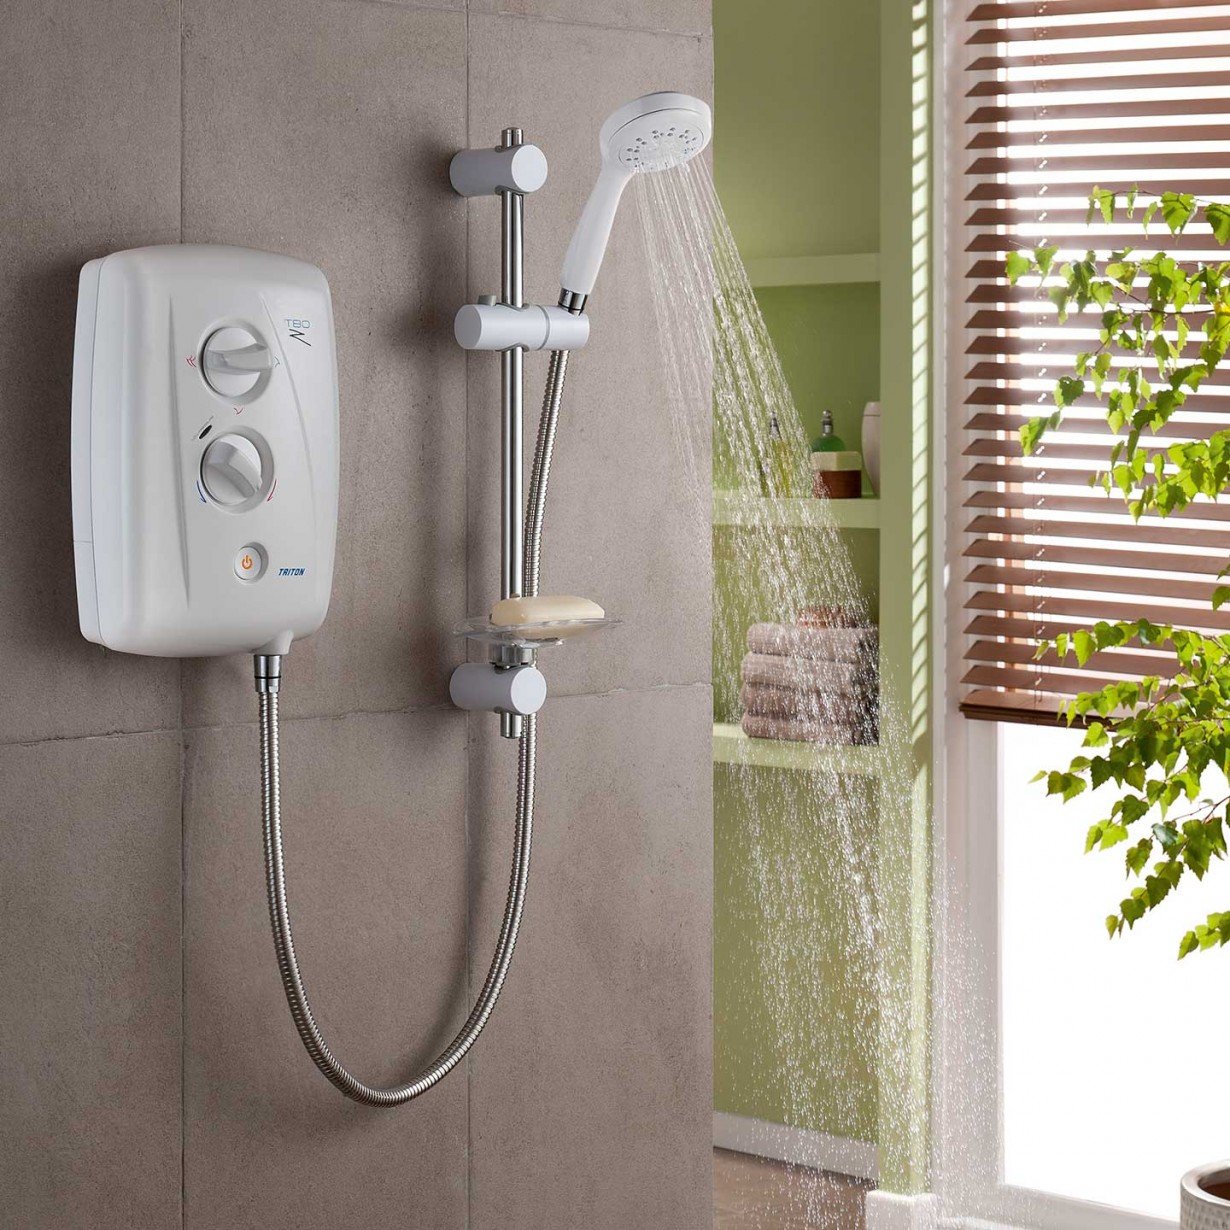 Triton | T80Z | Fast Fit | Electric shower | White Body | White rail | lifestyle